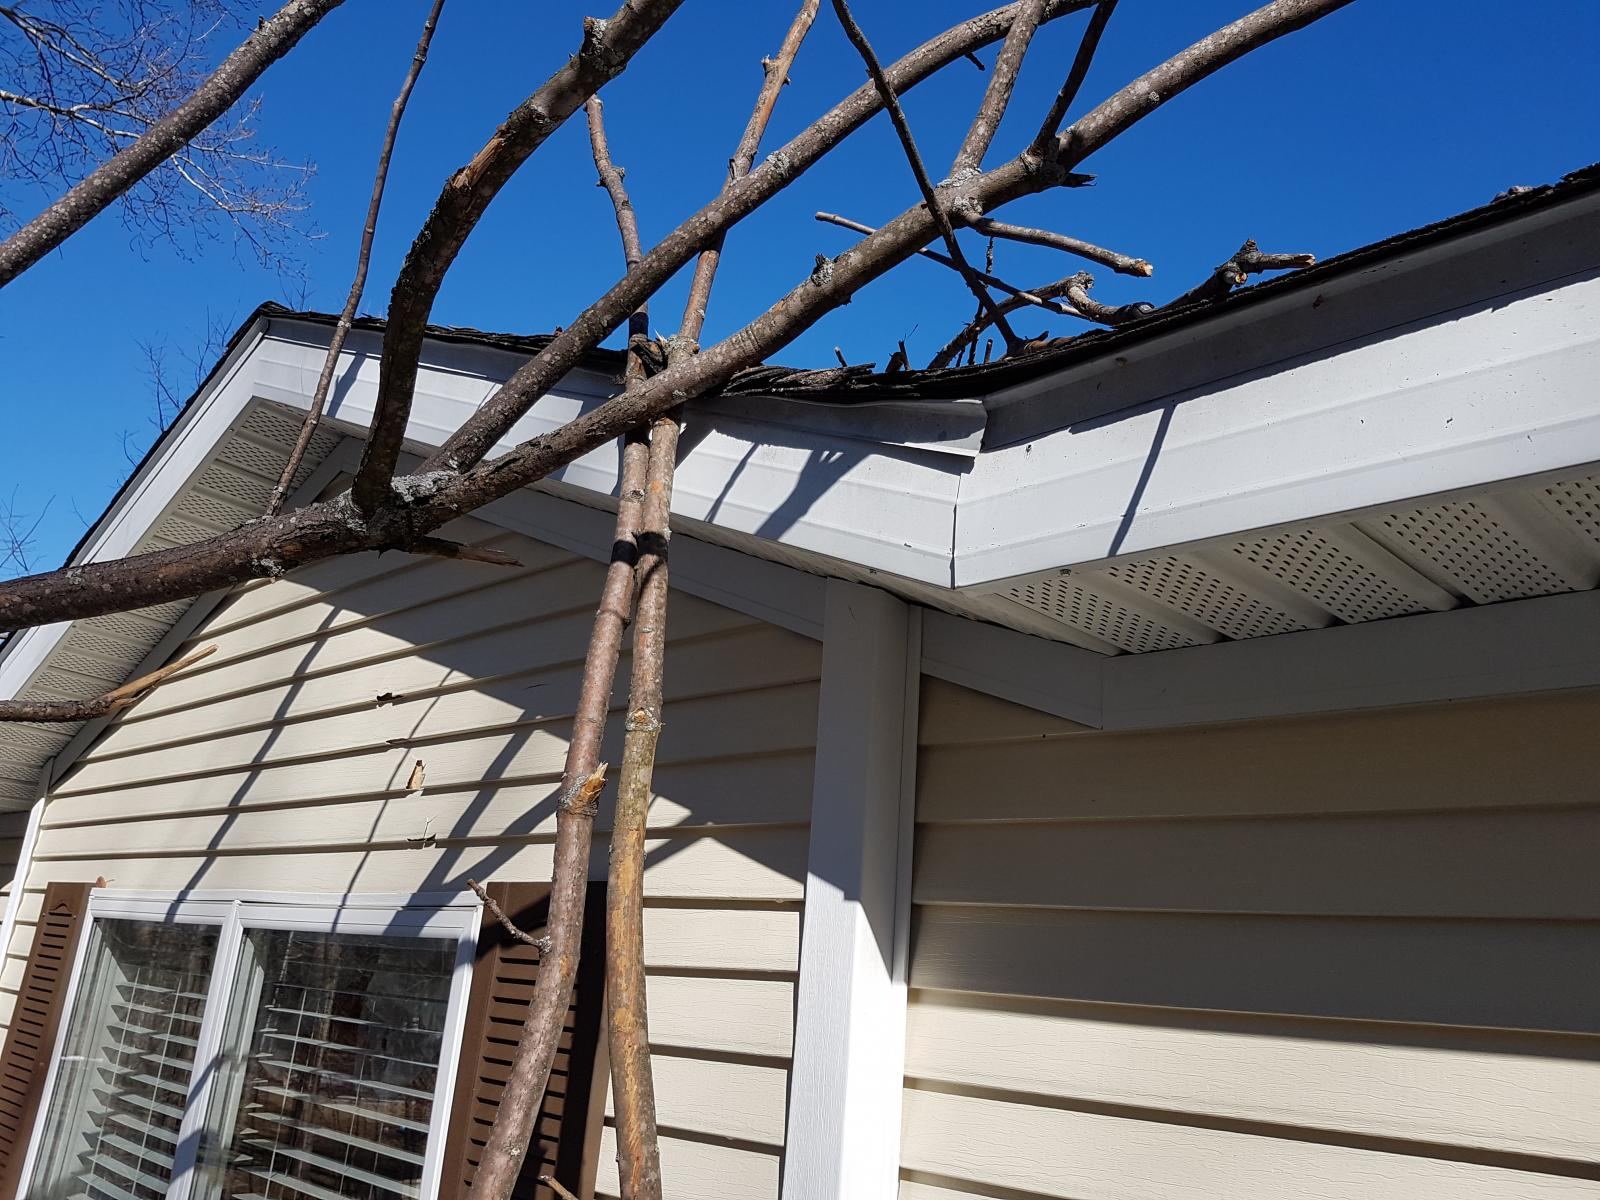 Tim Willson damage to house from strong winds - East Jordan